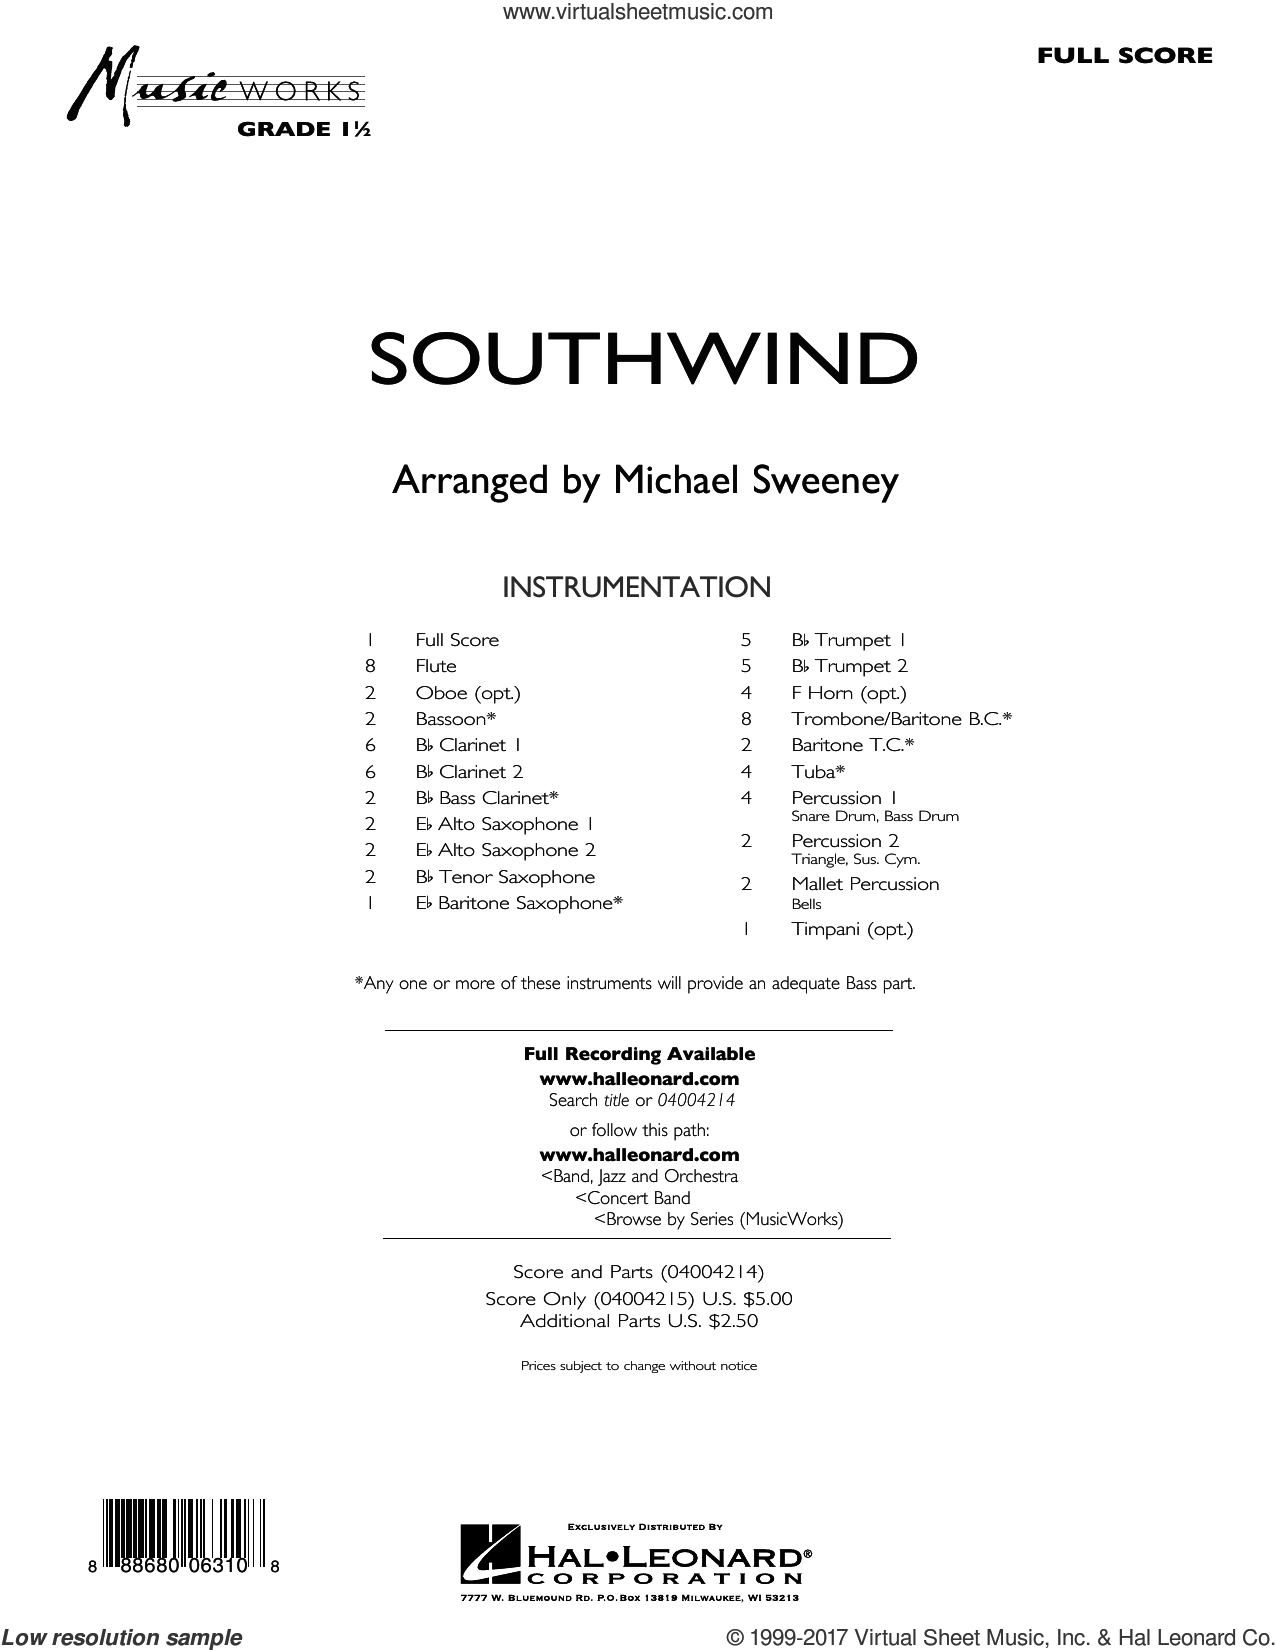 Southwind (COMPLETE) sheet music for concert band by Michael Sweeney, intermediate skill level